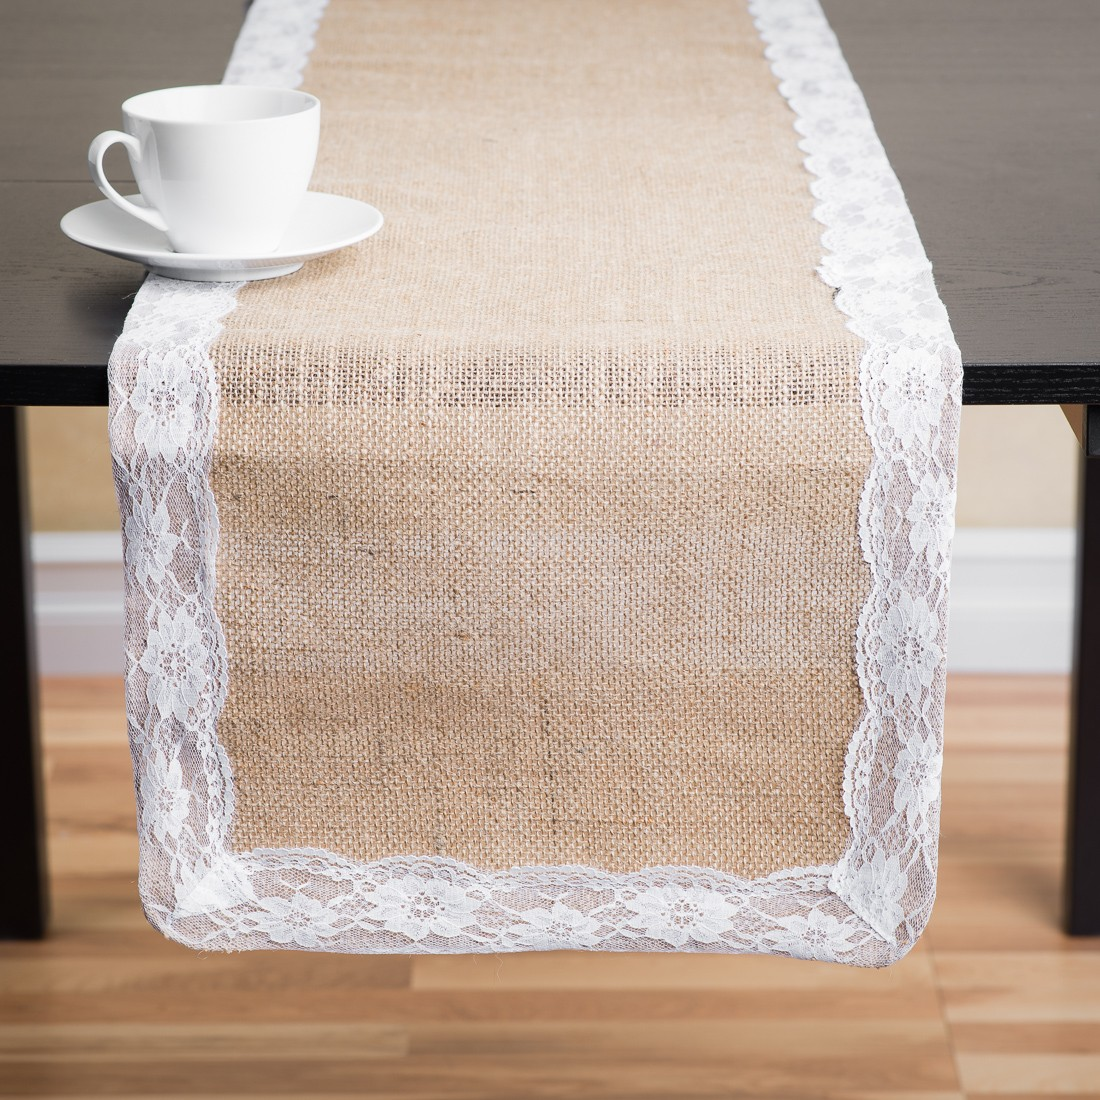 Sequin Table Runner Wholesale | Bulk Lace Table Runners | Lace Table Runners